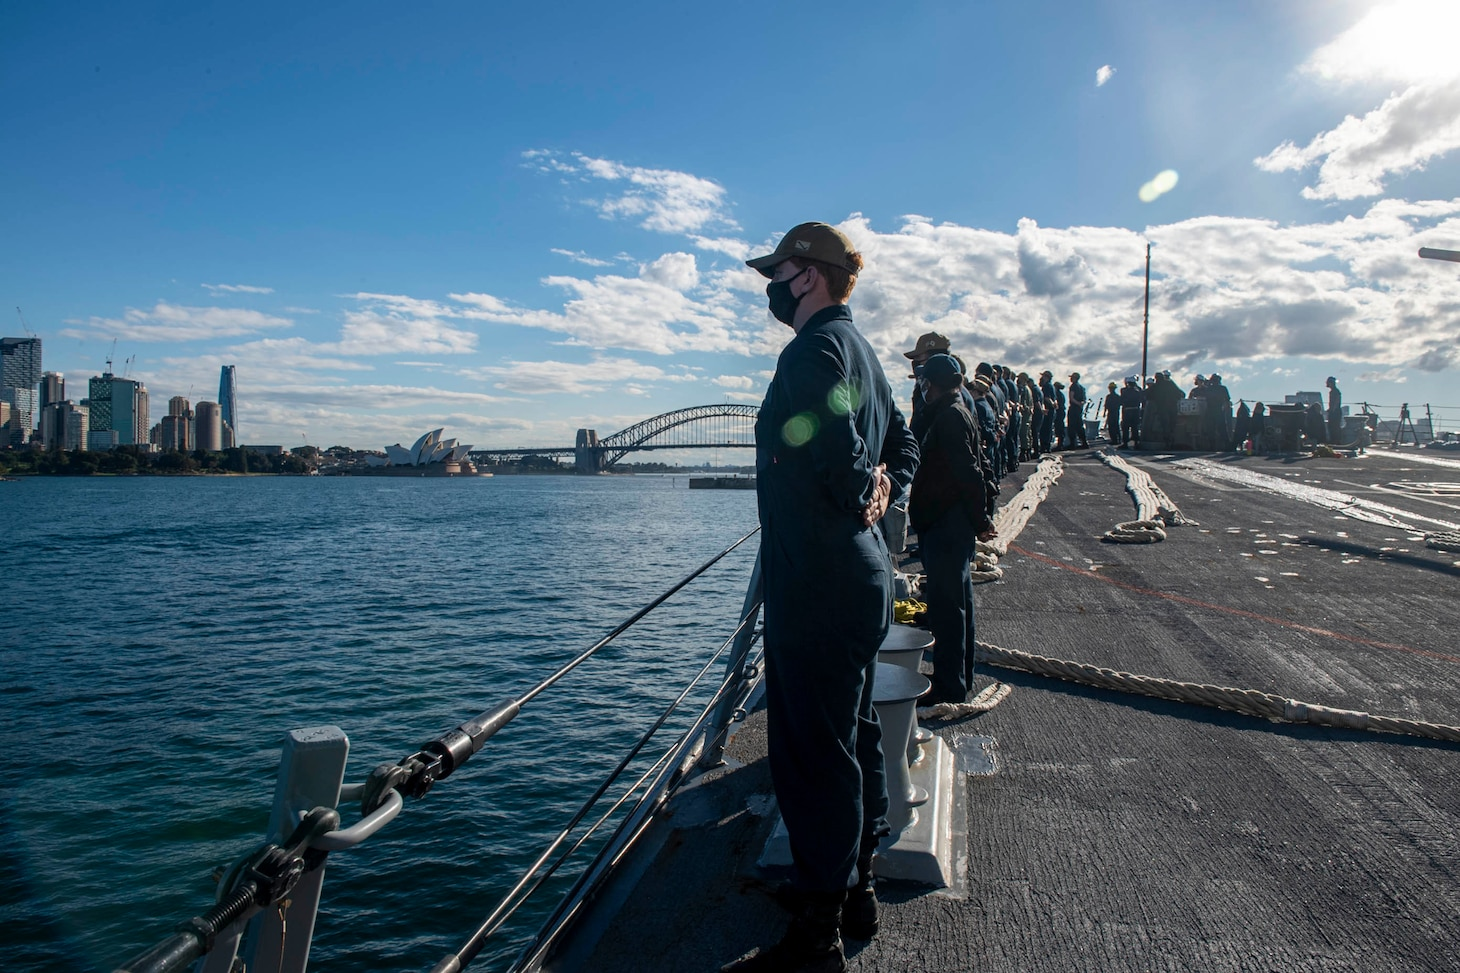 210703-N-HG846-1177 SYDNEY (July 3, 2021) – Sailors man the rails aboard Arleigh Burke-class guided-missile destroyer USS Rafael Peralta (DDG 115) as they enter Sydney Harbor for Pacific Vanguard 2021. Pacific Vanguard, an exercise involving U.S., Australian, Republic of Korea navies and Japan Maritime Self Defense Force, is designed to strengthen maritime operations in the multilateral environment. (U.S. Navy photo by Mass Communication Specialist 3rd Class Daniel Serianni)